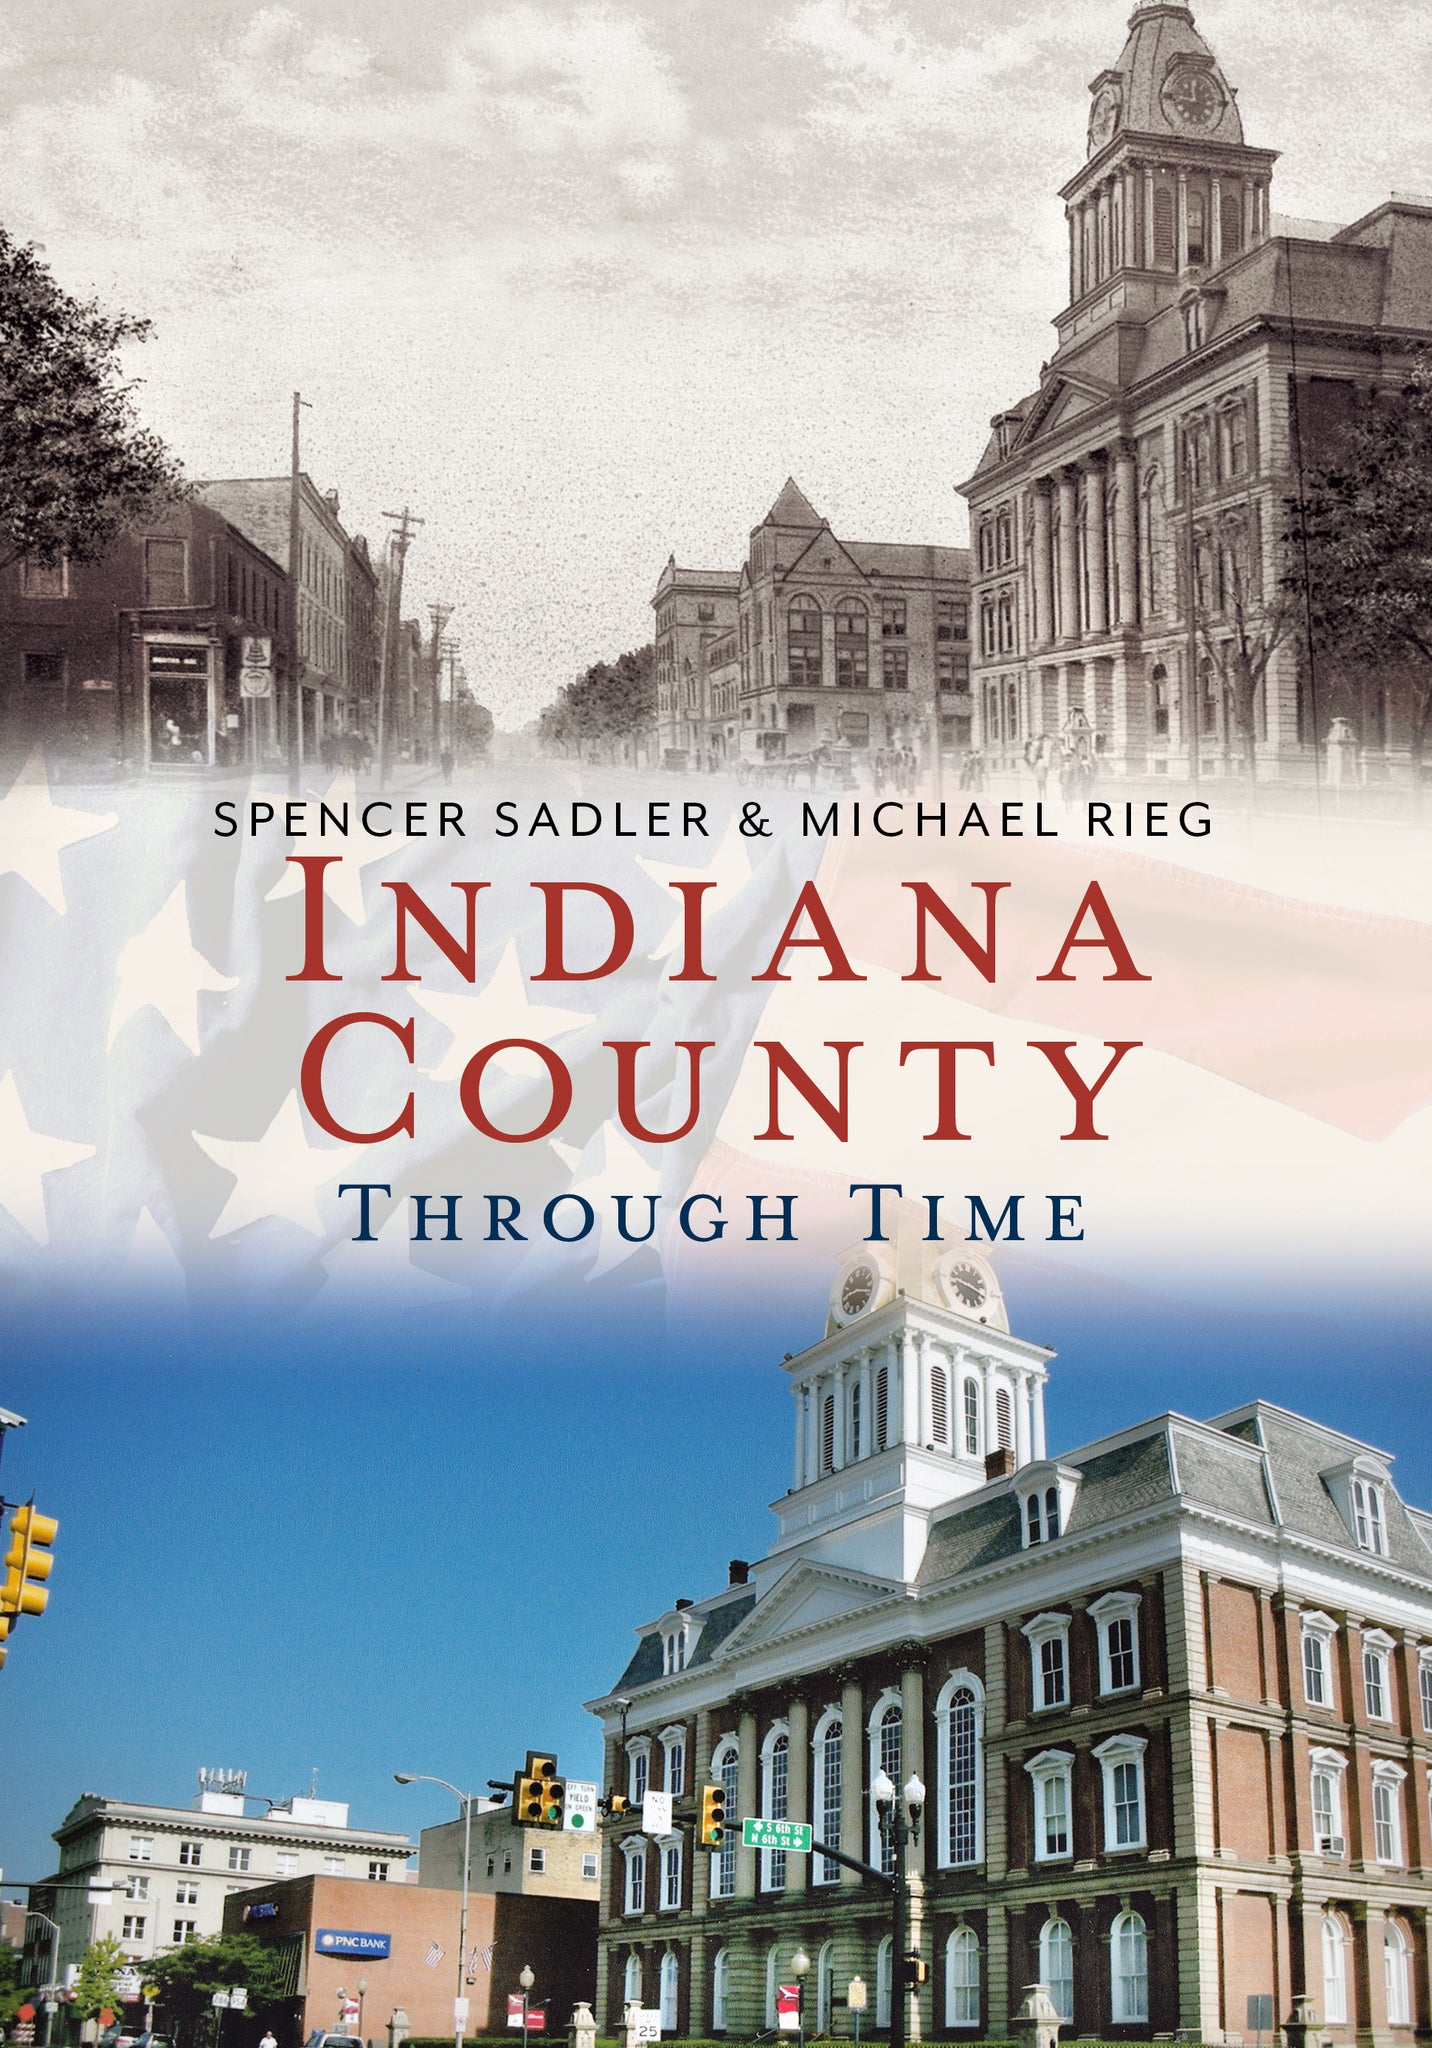 Indiana County Through Time